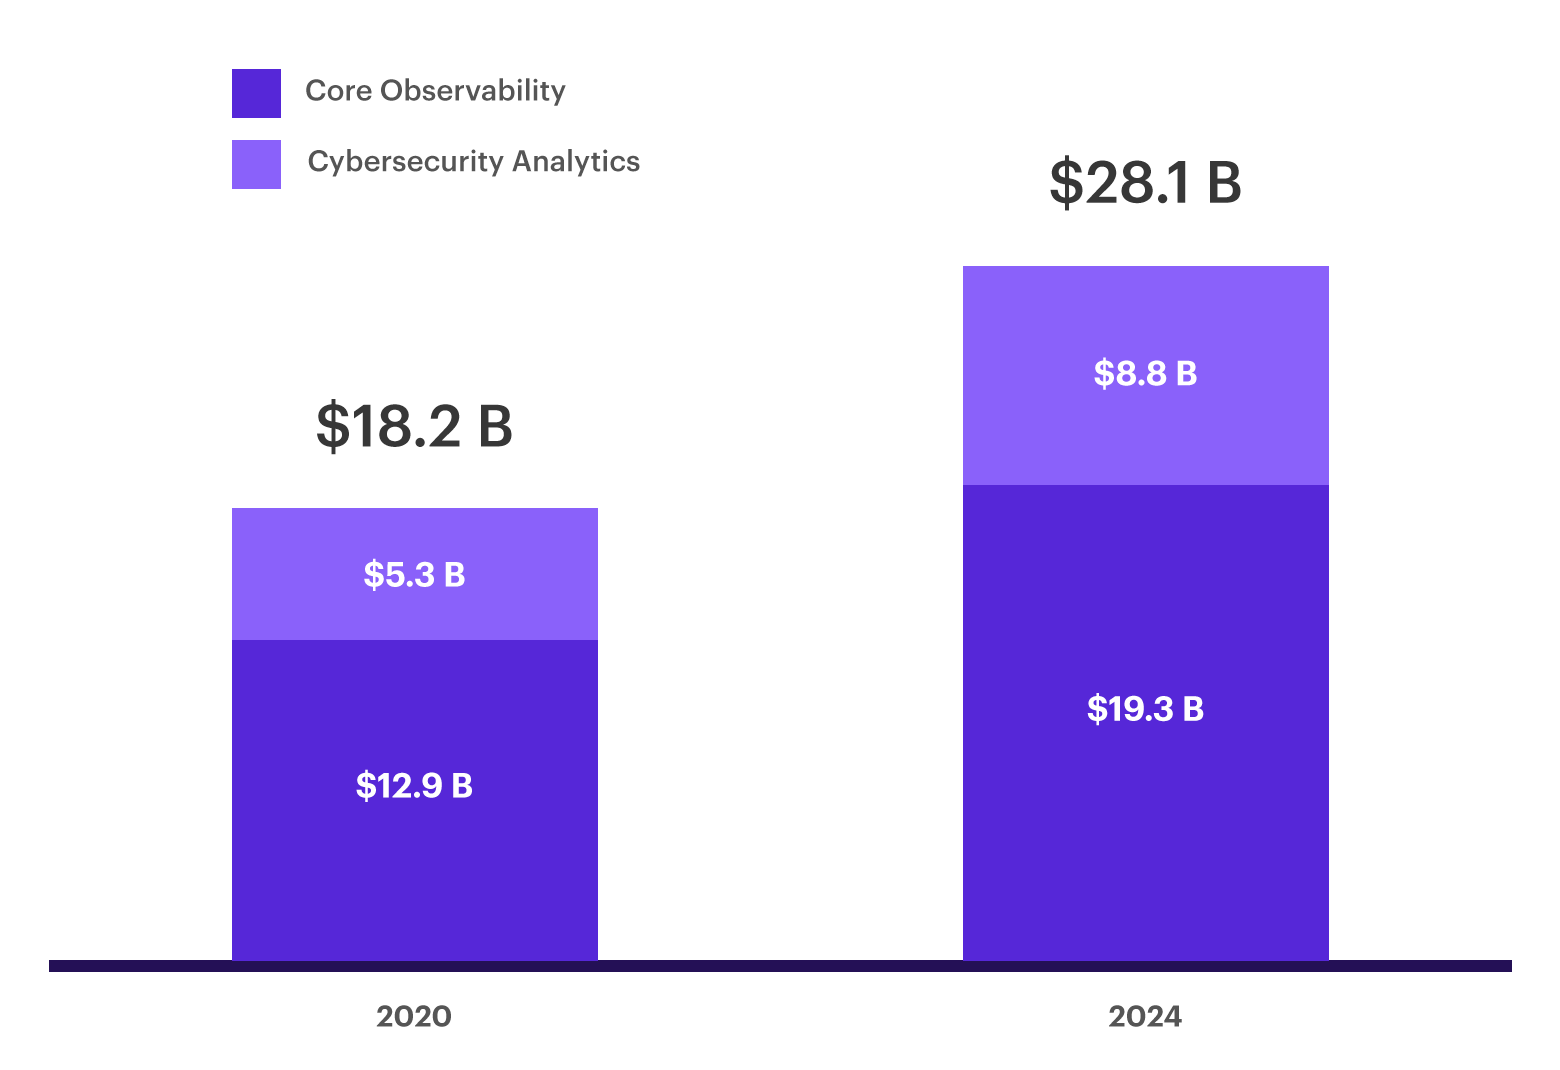 Chart - Security analytics and observability is expected to grow to $28 billion by 2024.